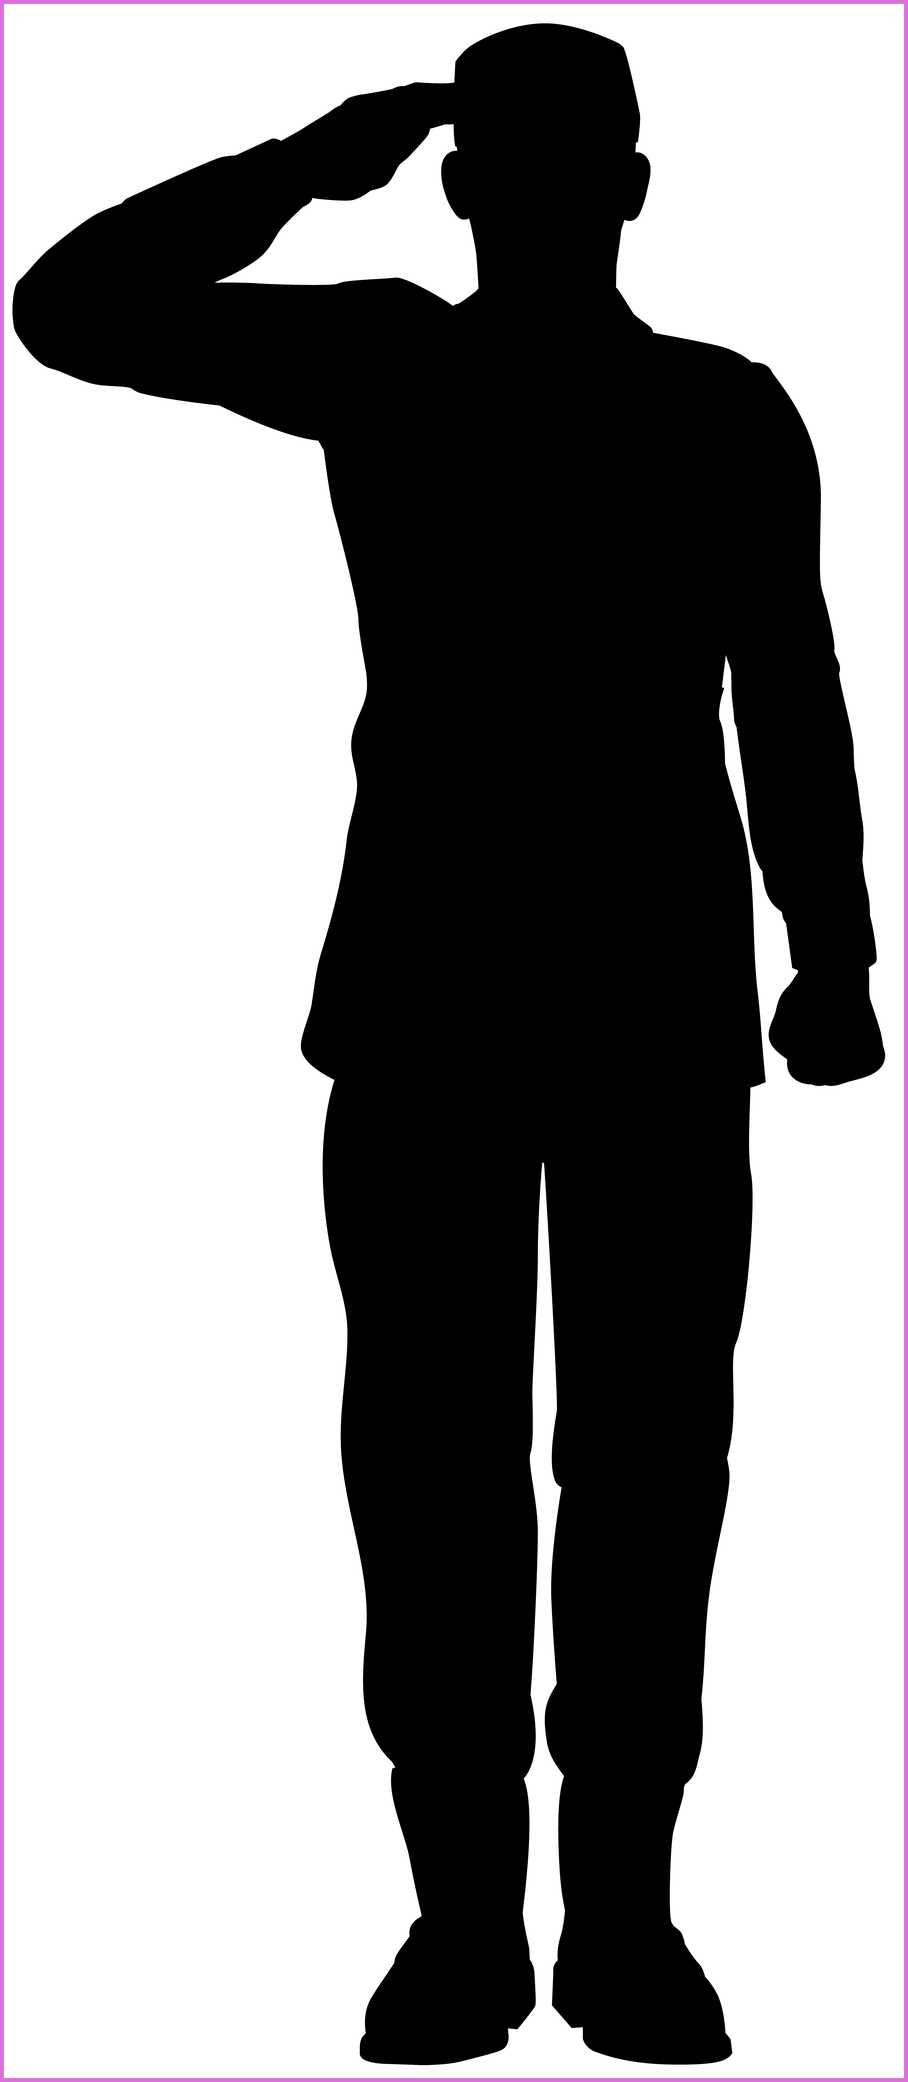 Awesome army soldier saluting. Soldiers clipart shoe